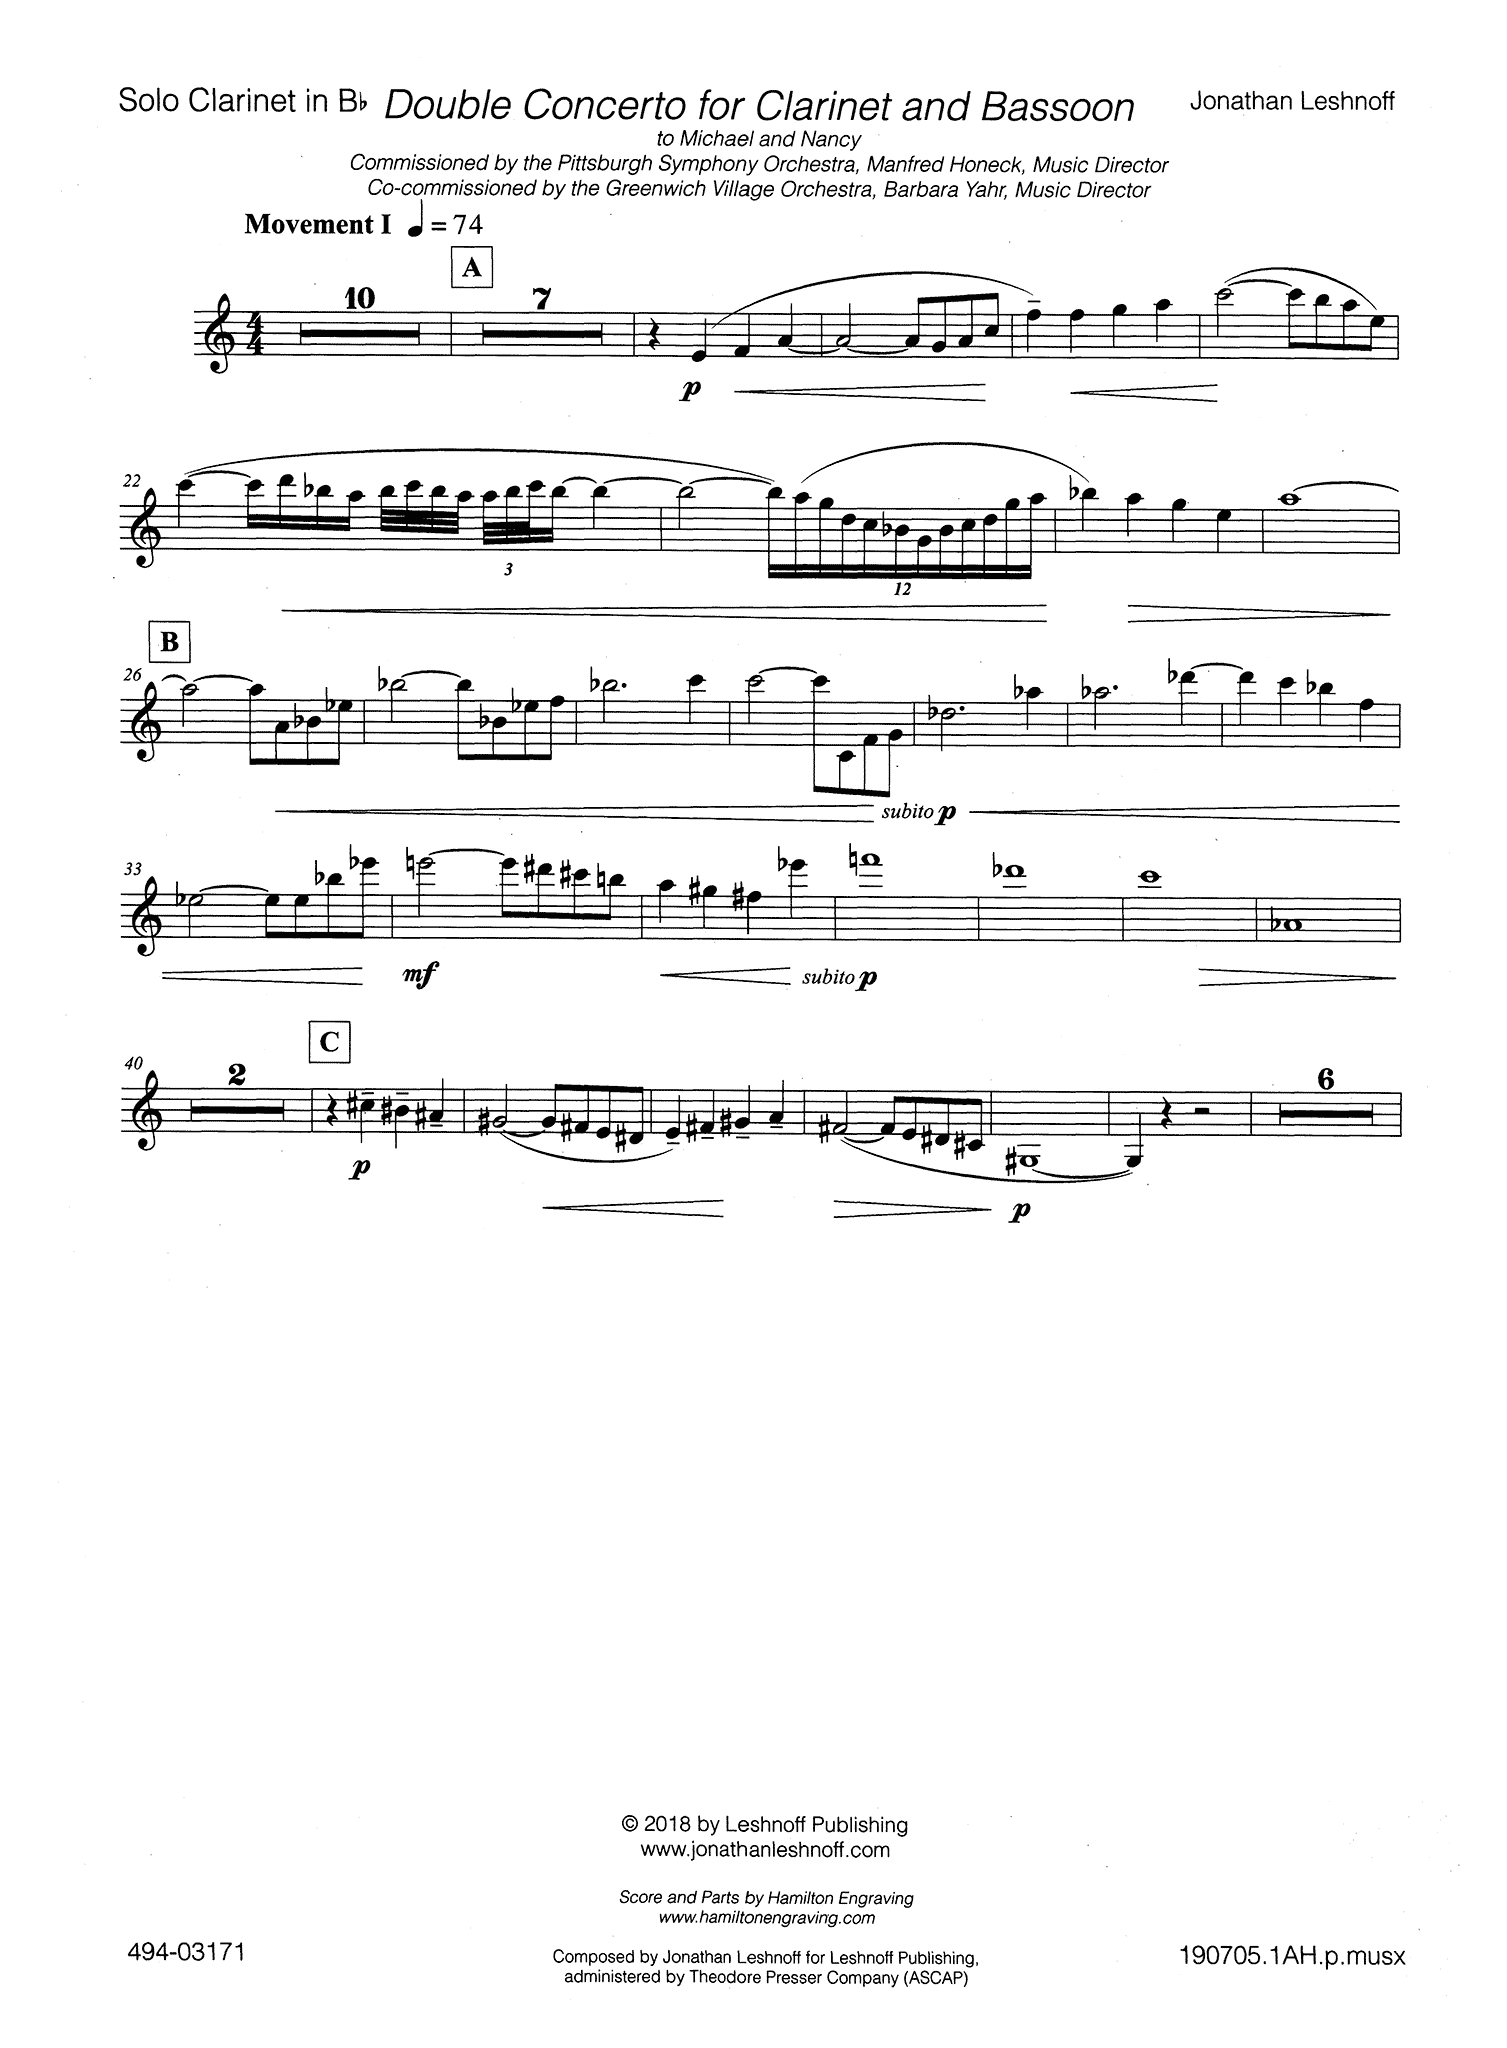 Leshnoff Double Concerto Clarinet part